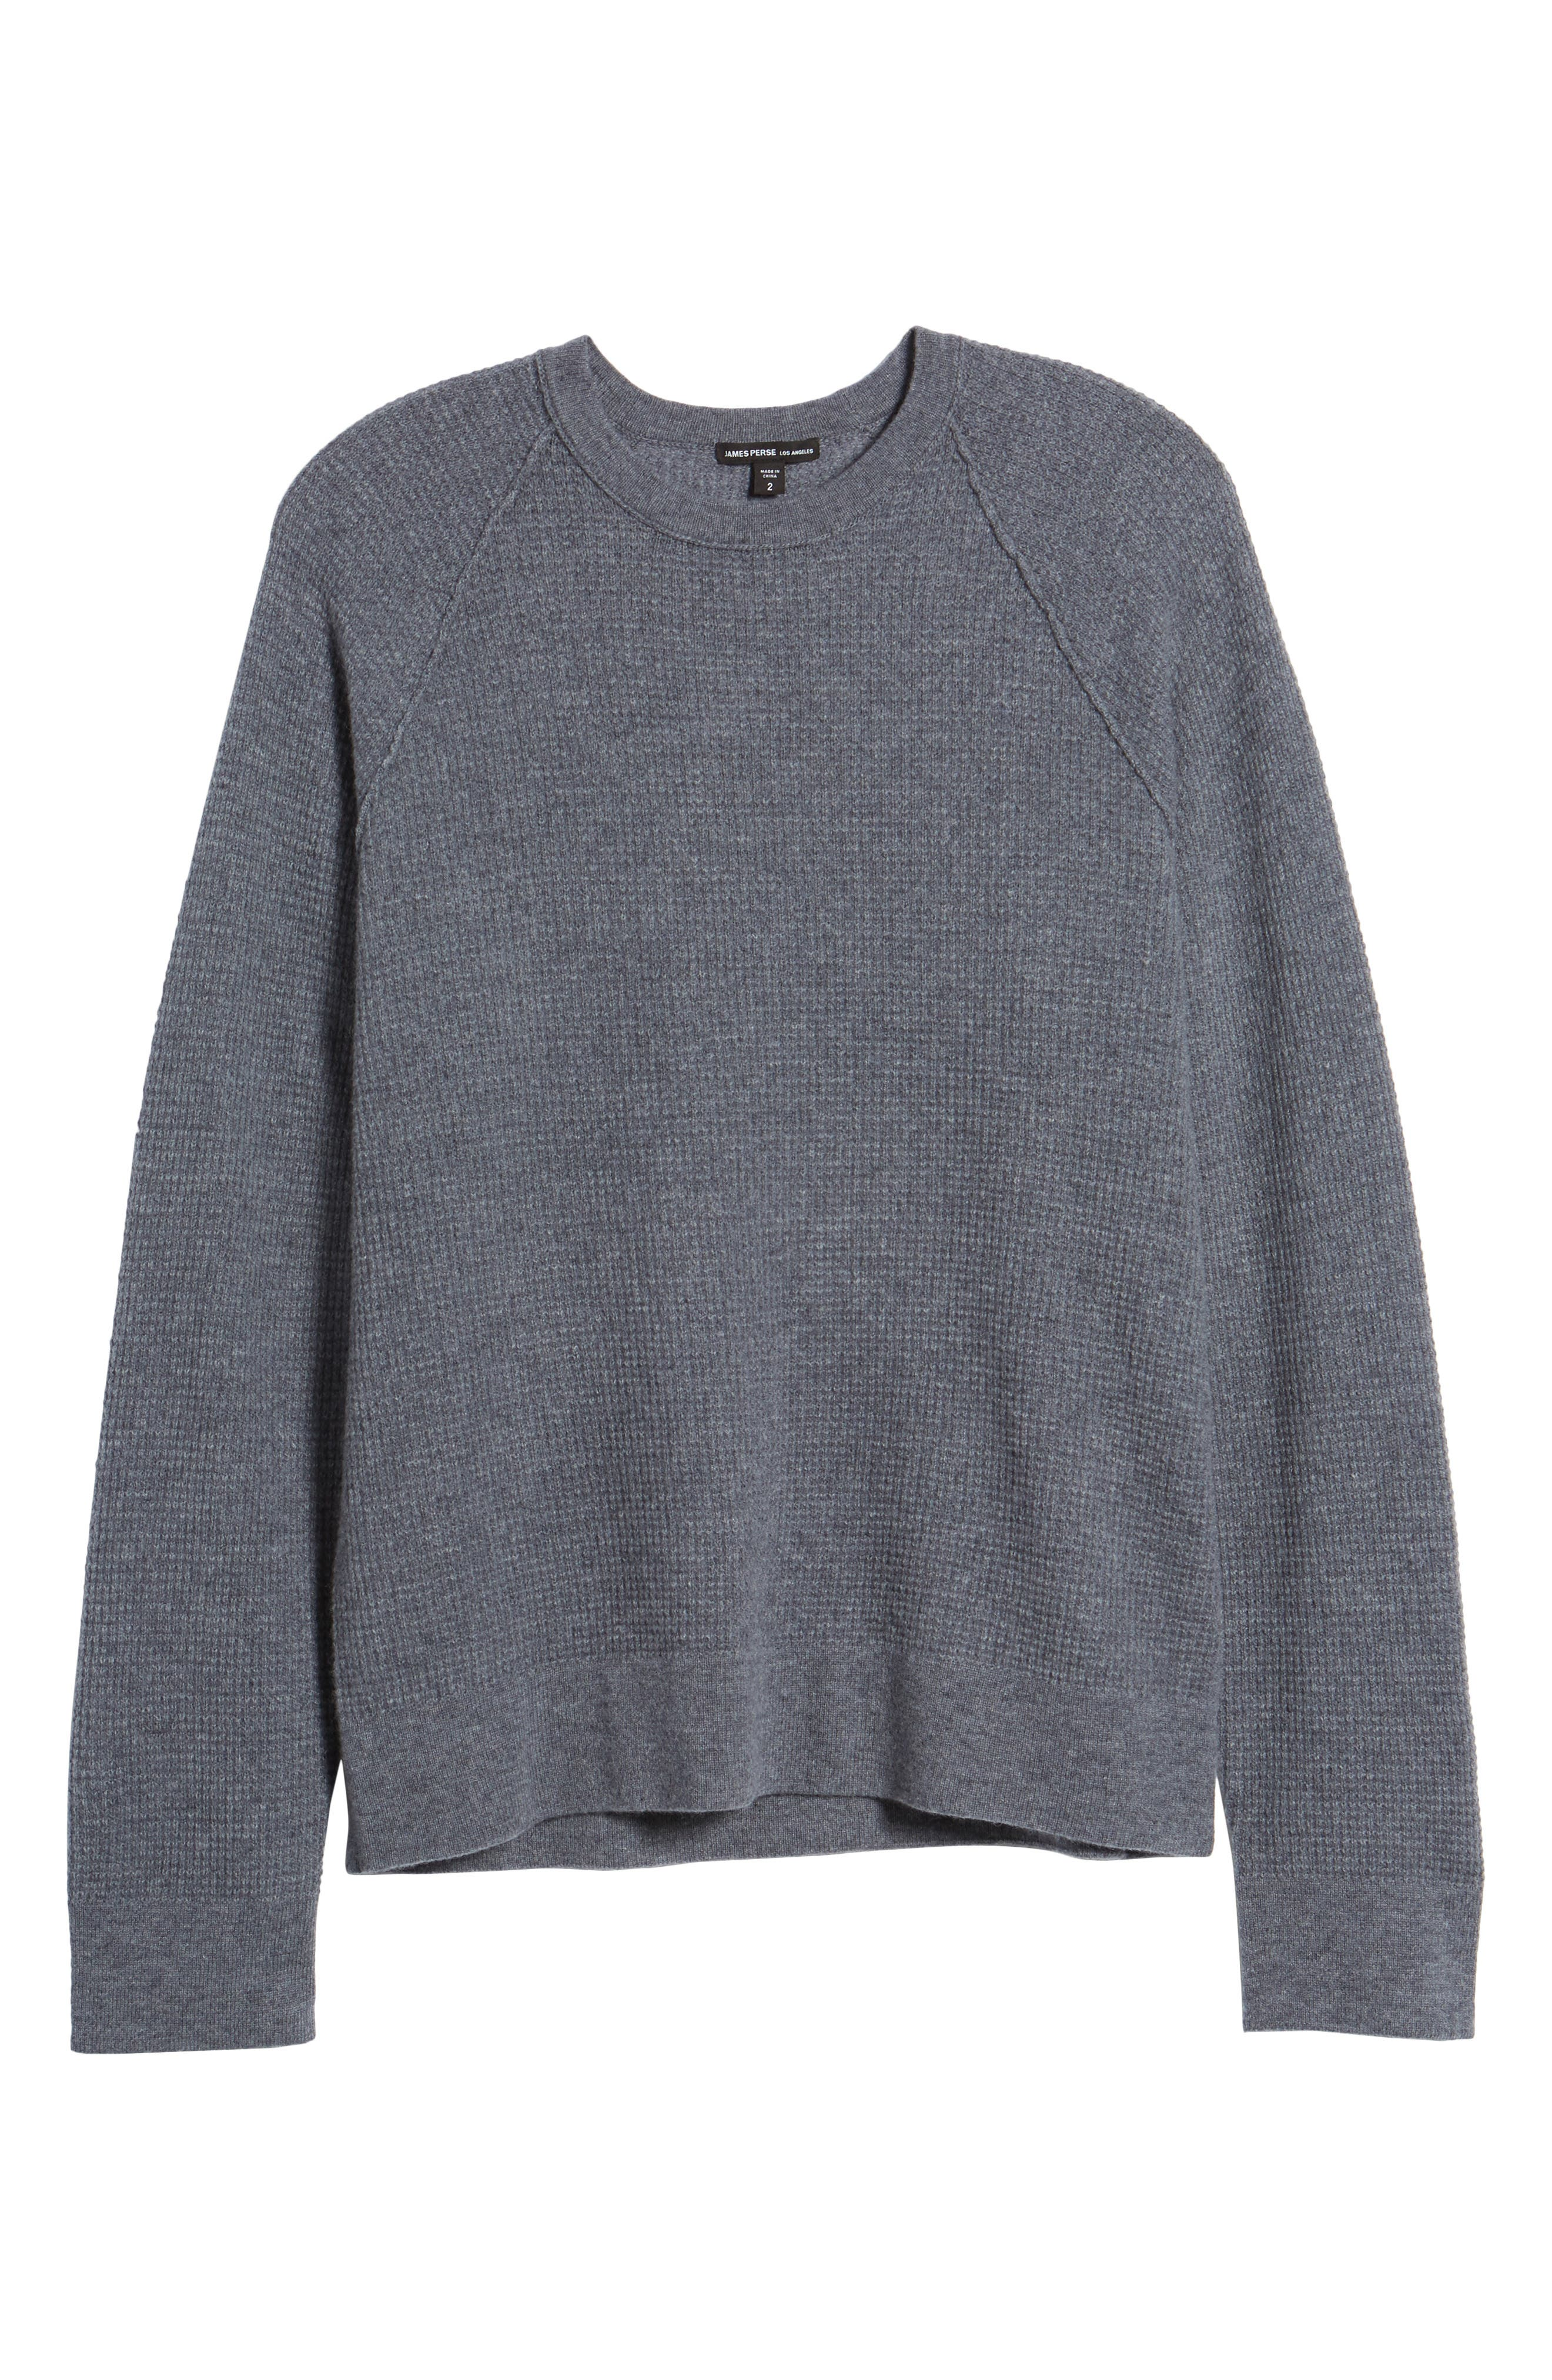 Thermal Cashmere Sweater,                             Alternate thumbnail 6, color,                             077